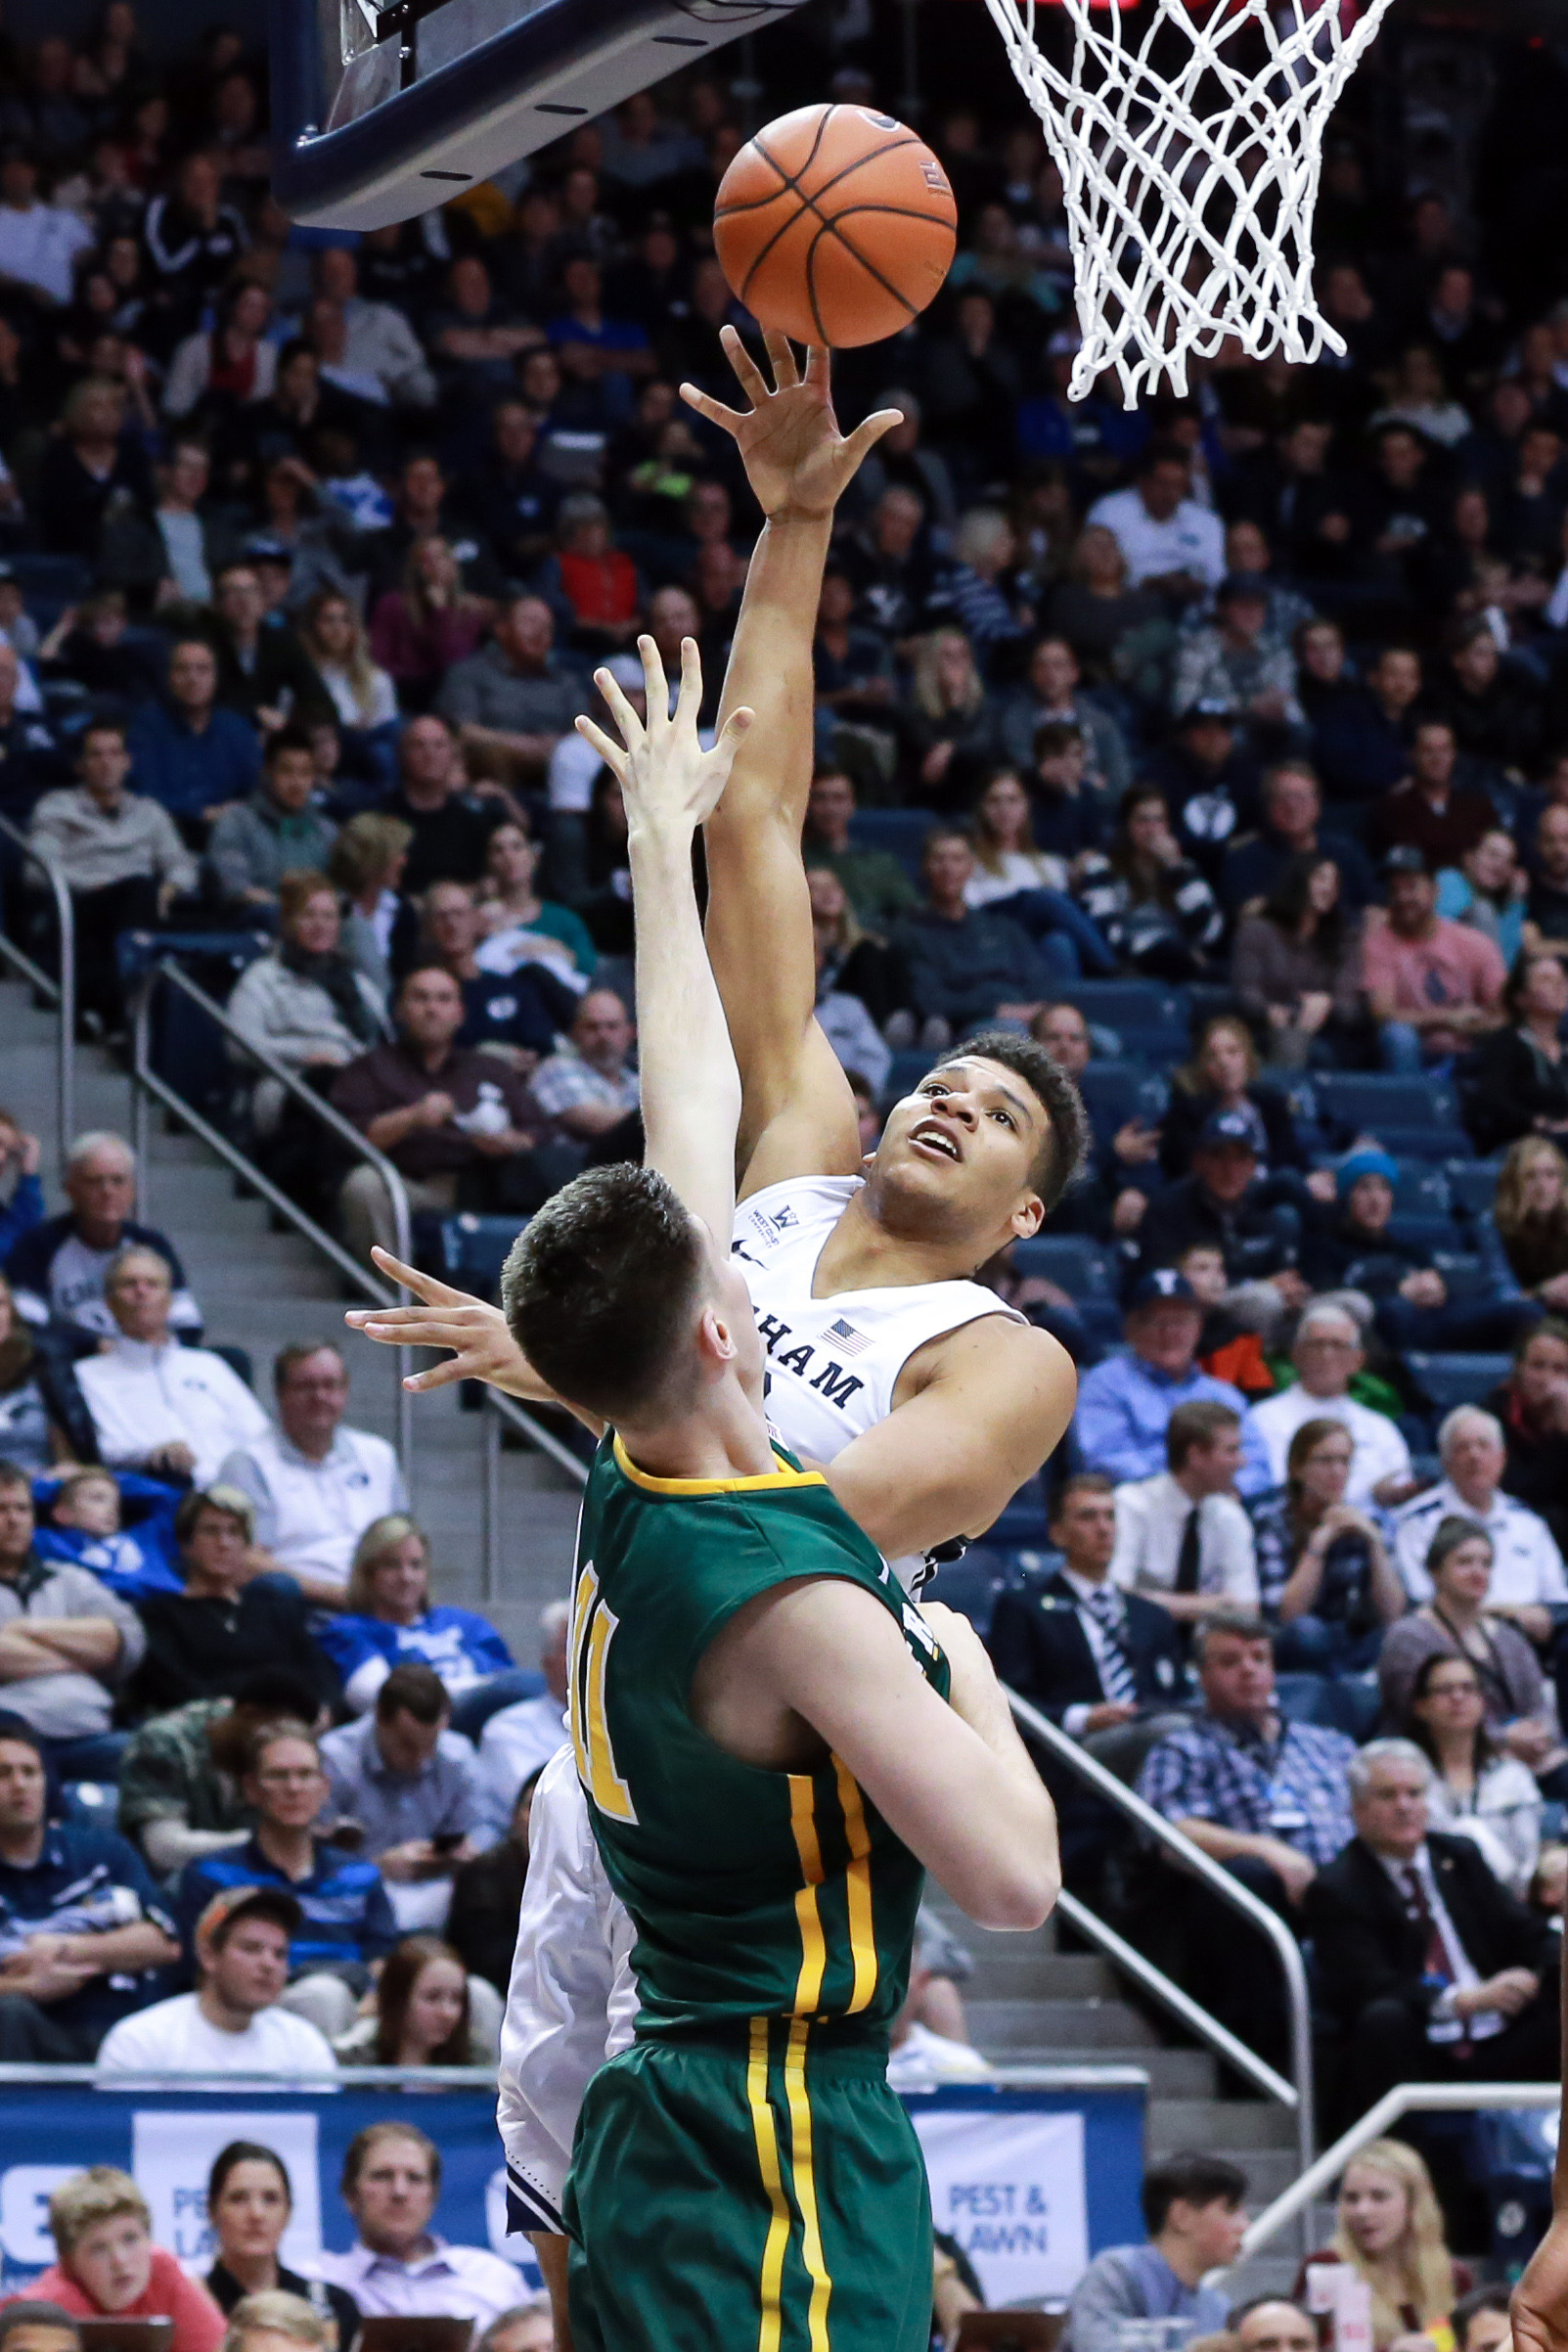 Jan 12, 2017; Provo, UT, USA; Brigham Young Cougars forward Yoeli Childs (23) shoots the ball over San Francisco Dons forward Remu Raitanen (11) during the second half at Marriott Center. Brigham Young Cougars won the game 85-75. Mandatory Credit: Chris Nicoll-USA TODAY Sports